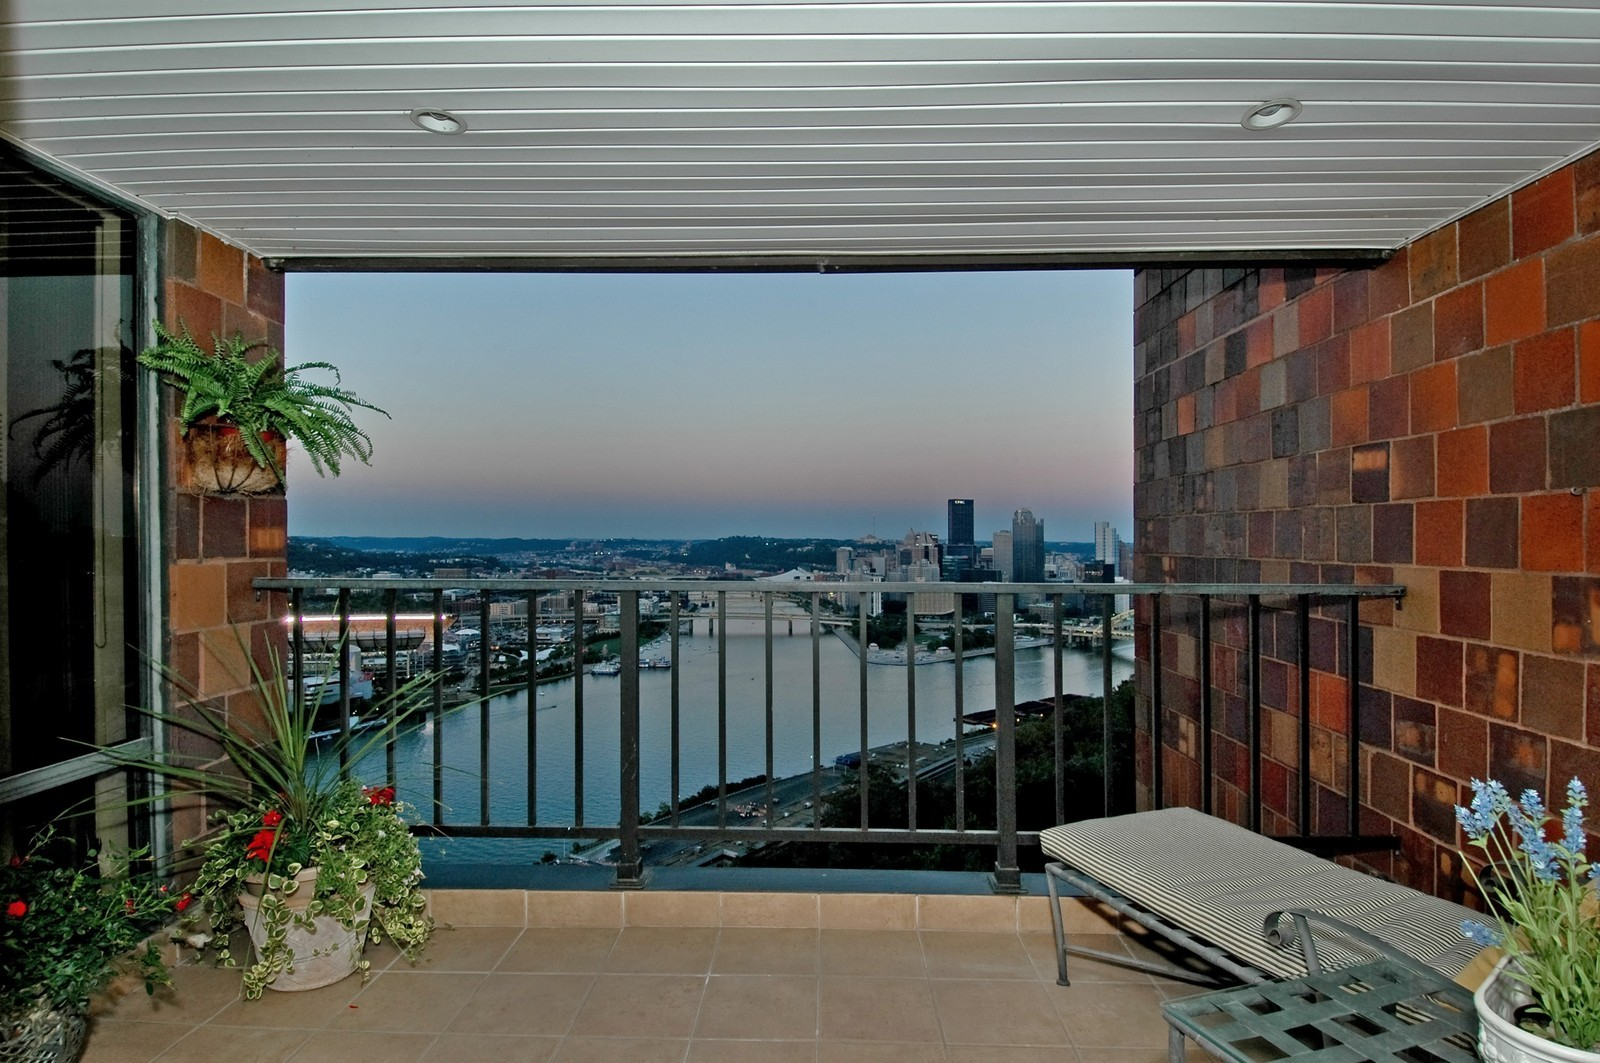 Real Estate Photography - 1700 Grandview Ave, Unit 603, Pittsburgh, PA, 15211 - Patio